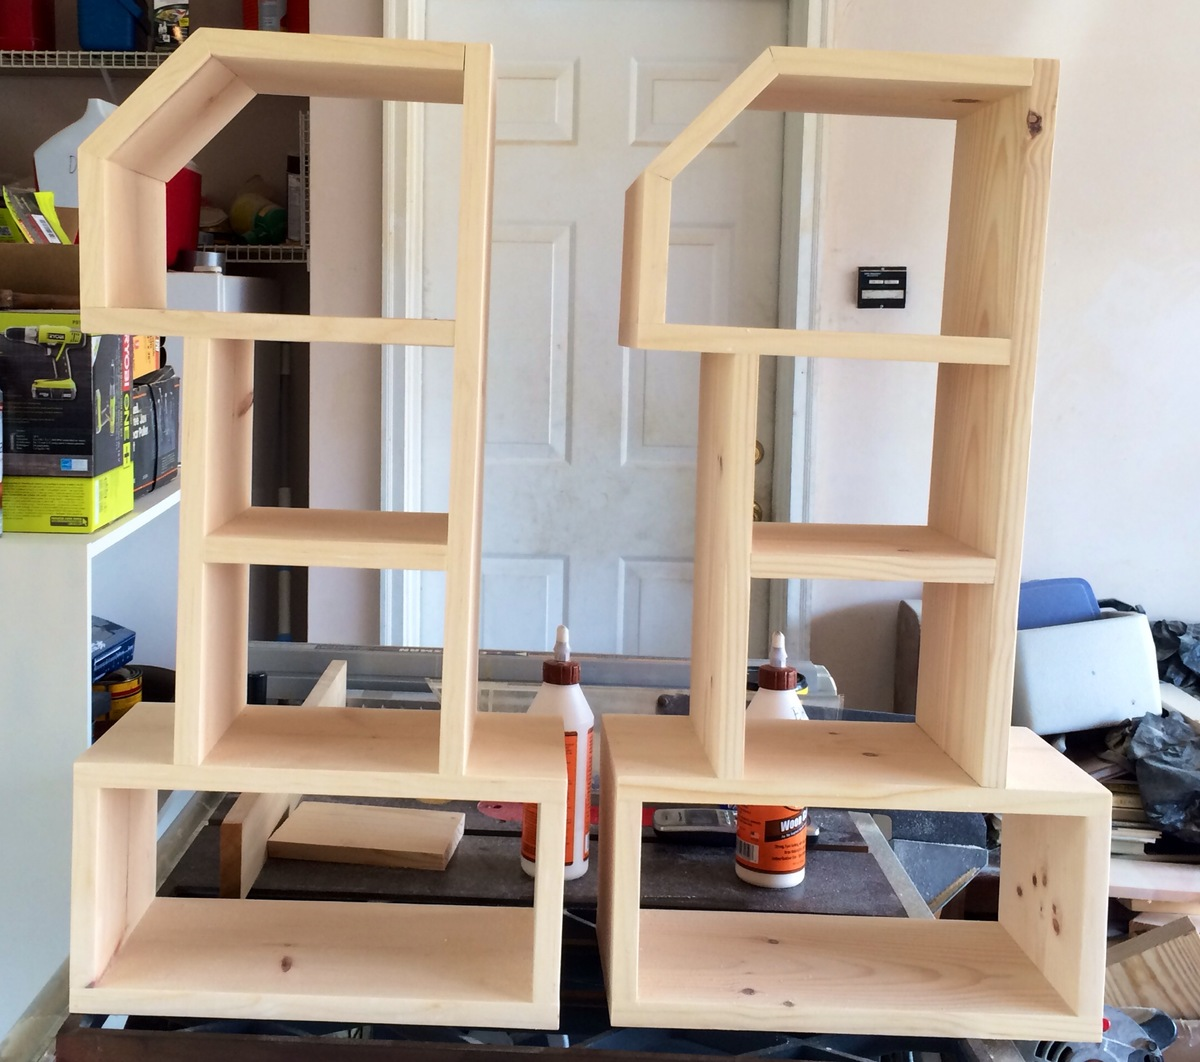 Number 1 Shelves | Do It Yourself Home Projects from Ana White 2048 x 1813